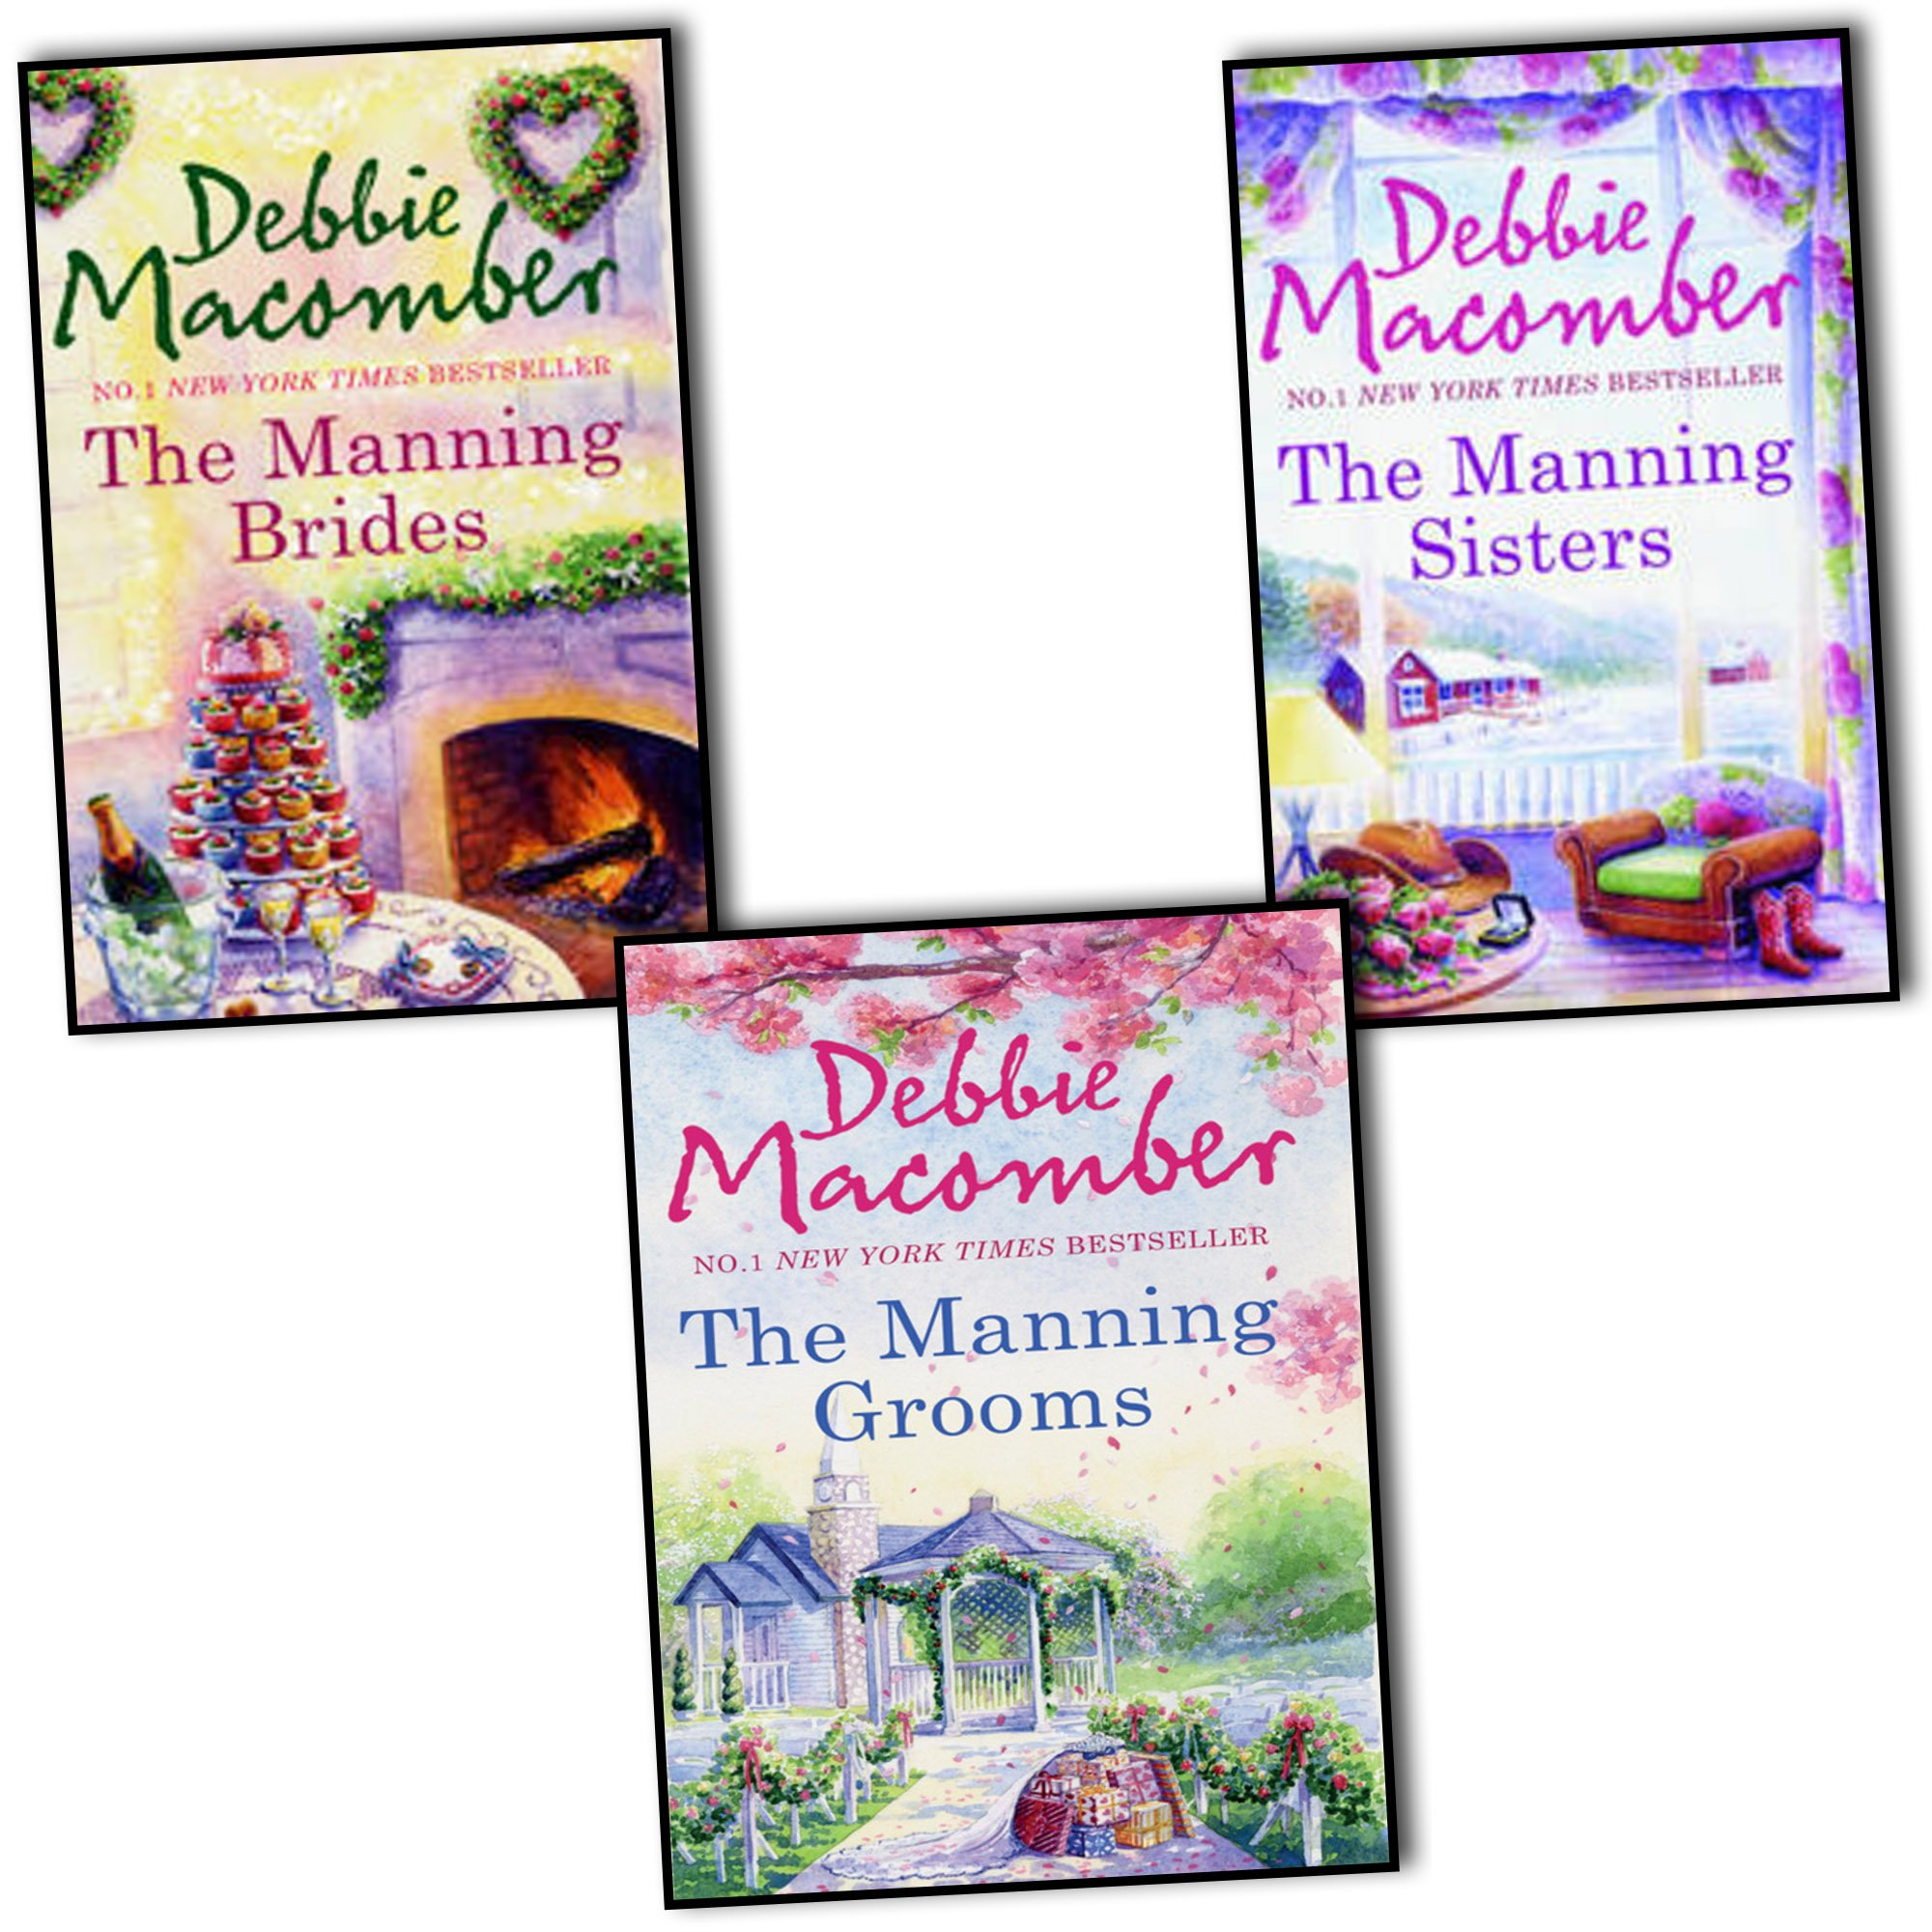 Debbie Macomber The Manning Trilogy 3 Books Collection Pack Set RRP: £23.97 (The Manning Grooms, The Manning Brides, The Manning Sisters) PDF